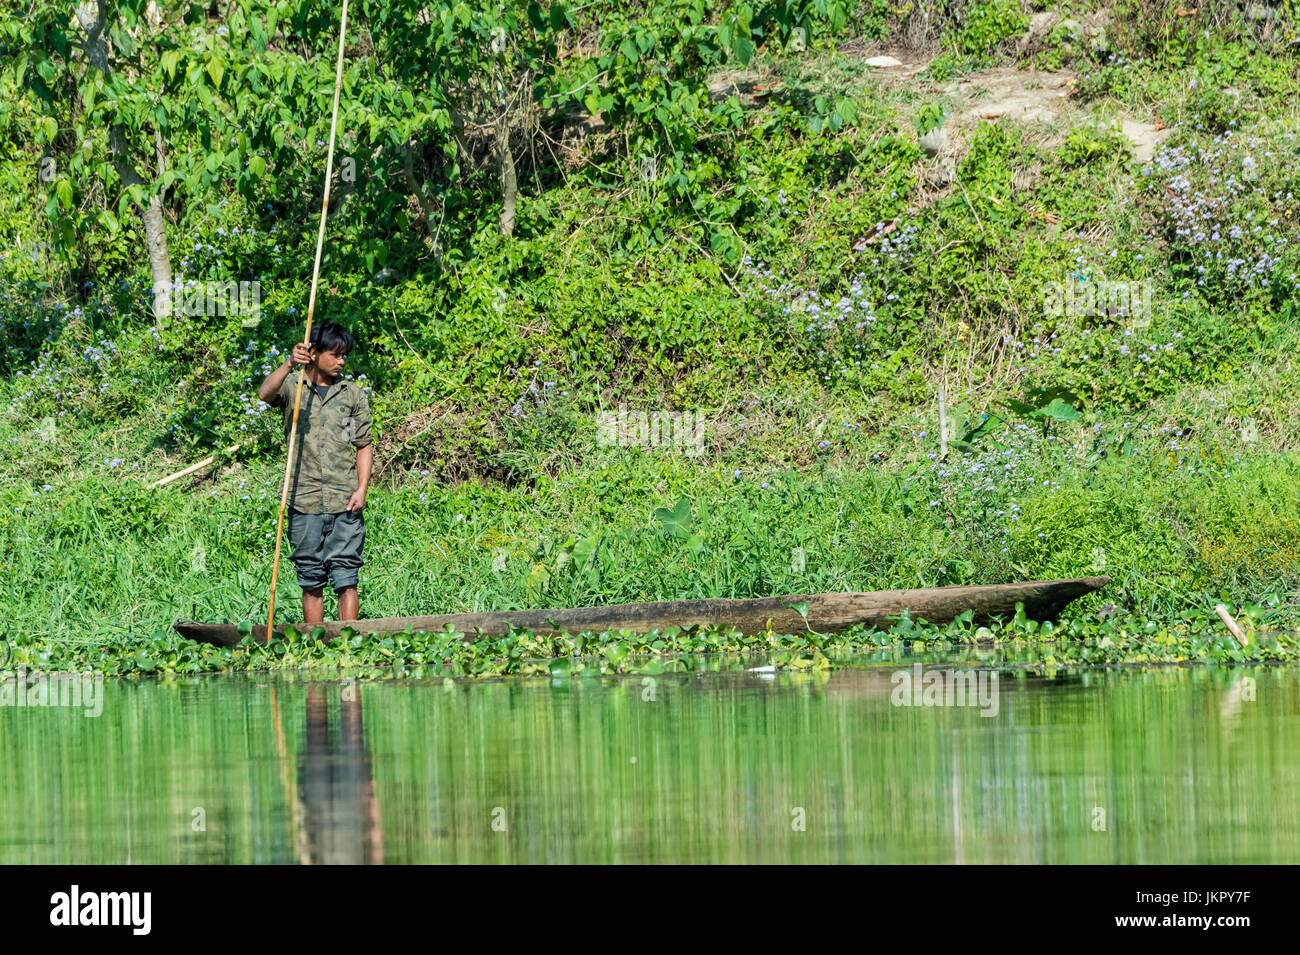 Nepalese Fisherman on his canoe, For editorial Use only, Chitwan district, Nepal - Stock Image